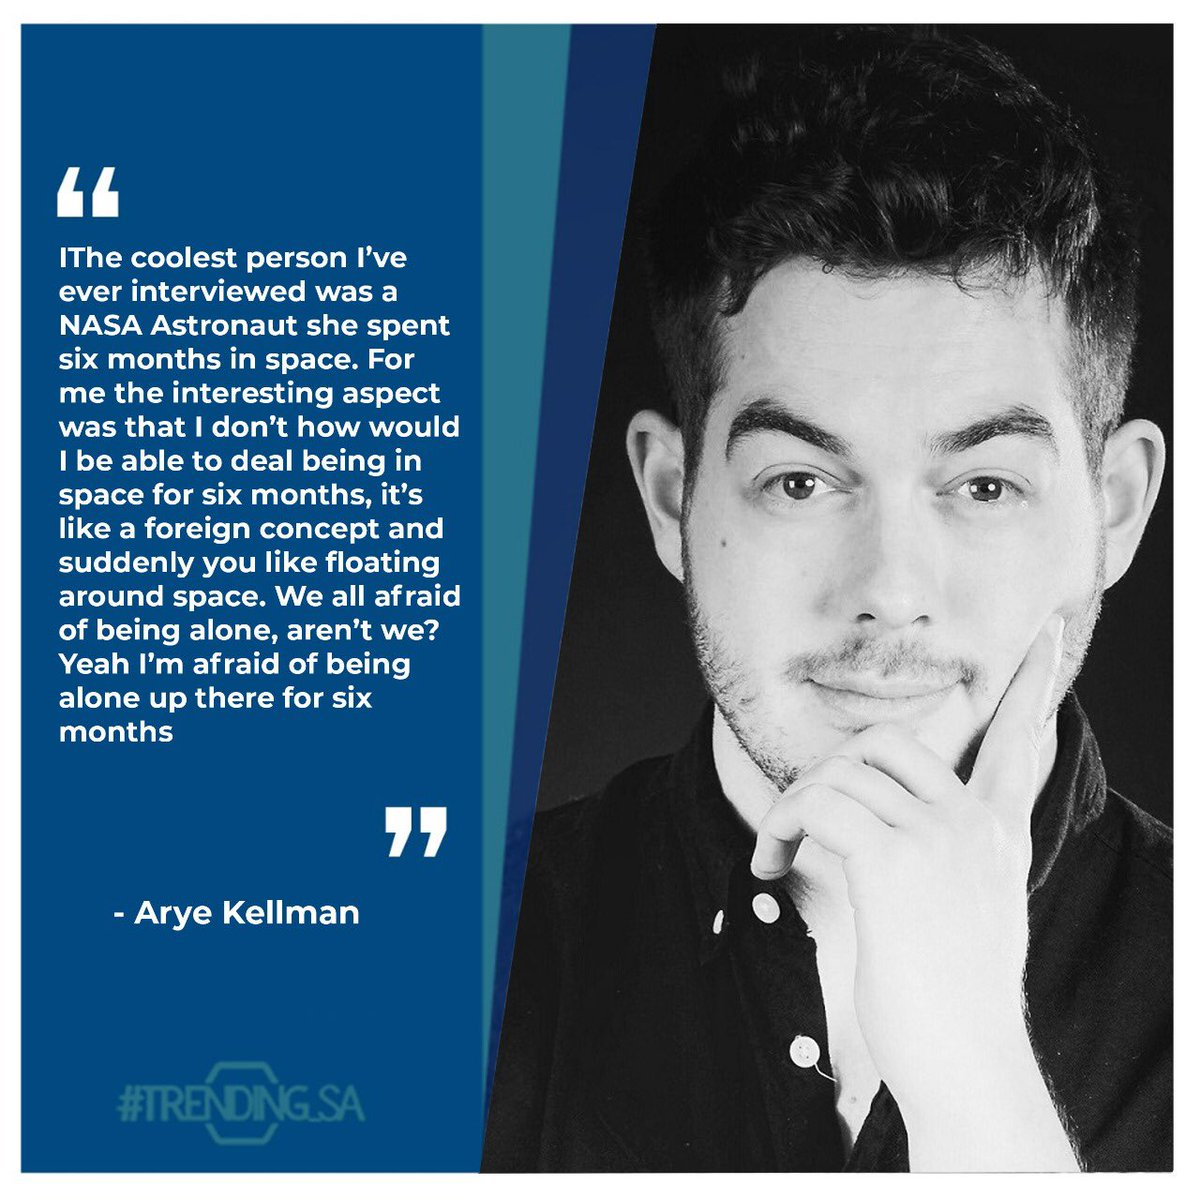 Radio Presenter Arye Kellman on being scared to be alone. #tsaonline #tsaon3